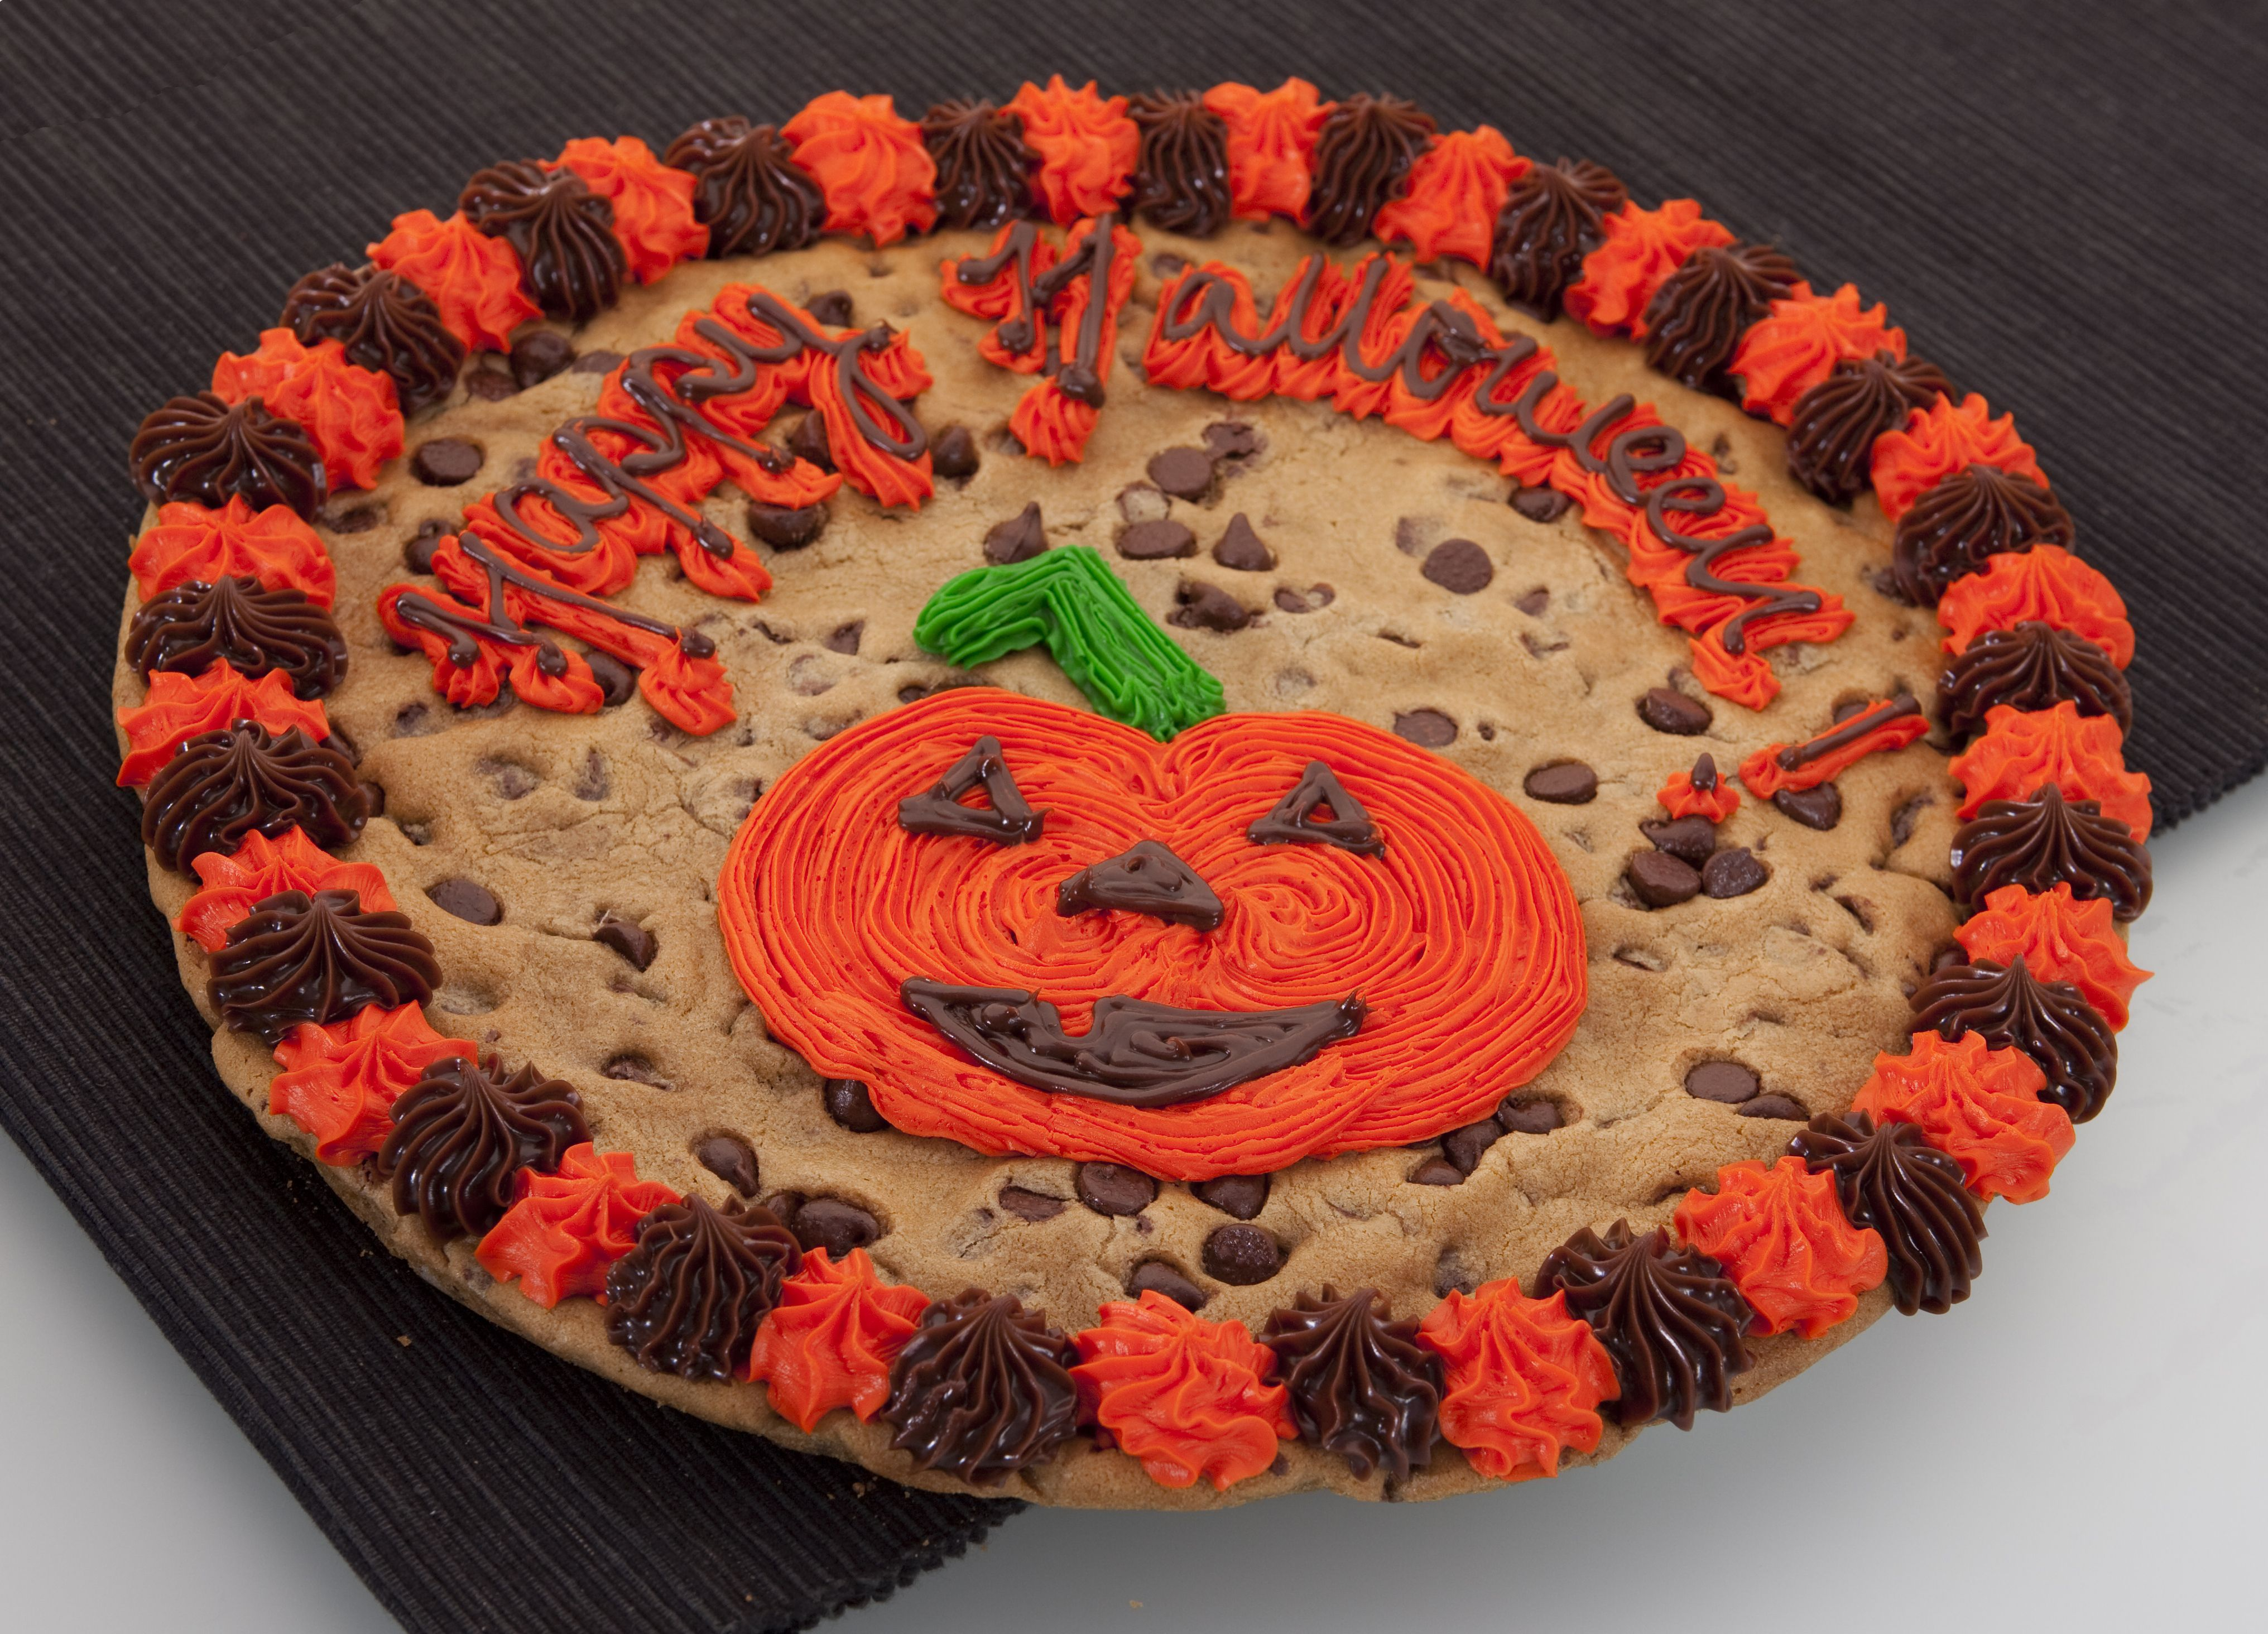 Pin By Eva Markakis On Acme With Images Halloween Cookies